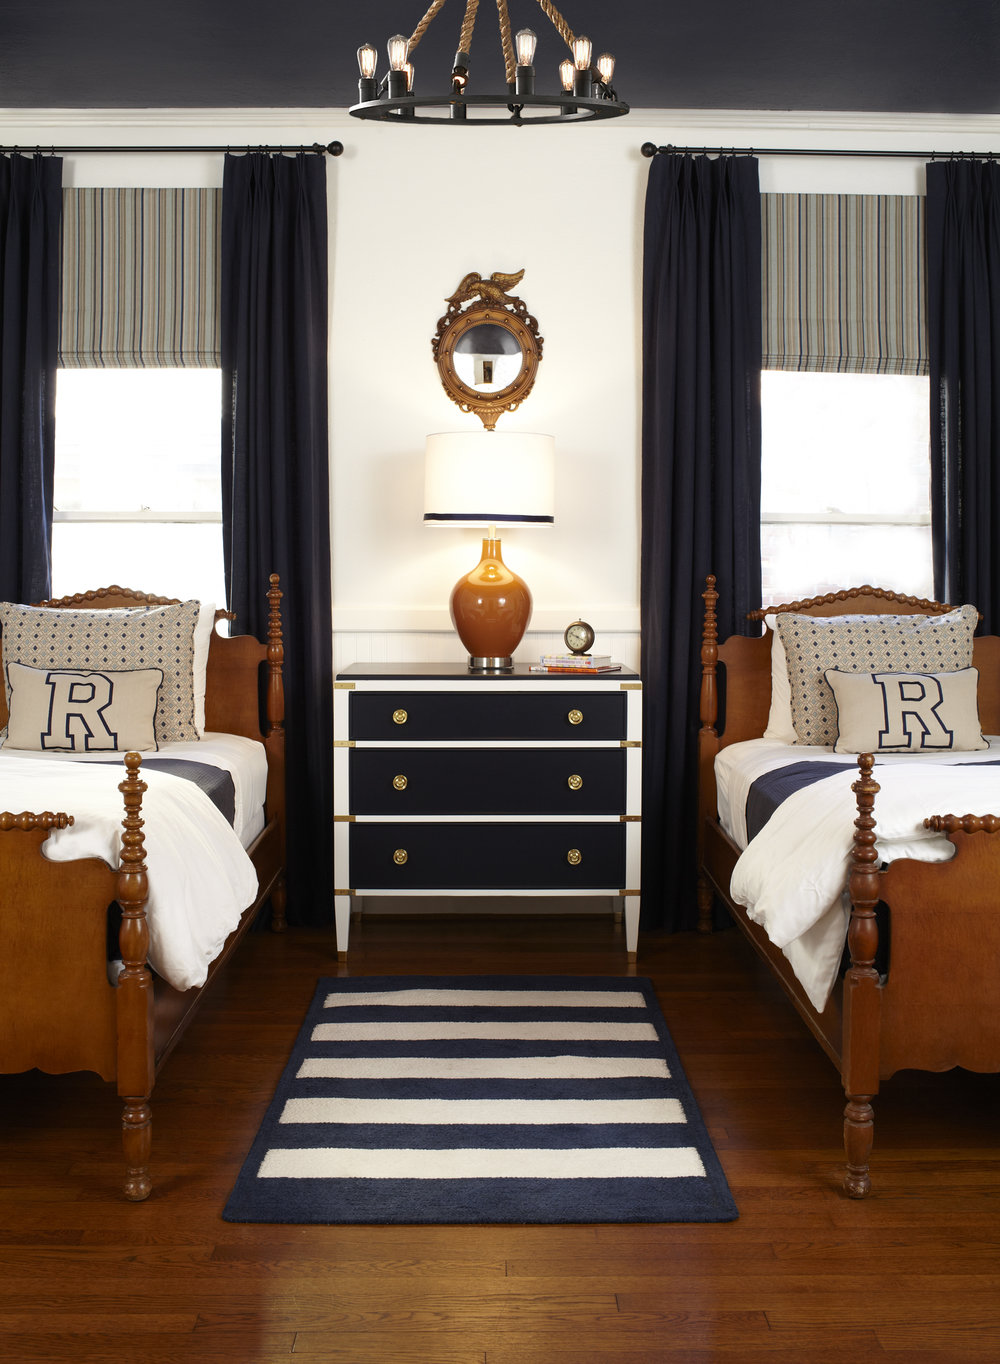 R-Bedroom_3822-Crop-1.jpg